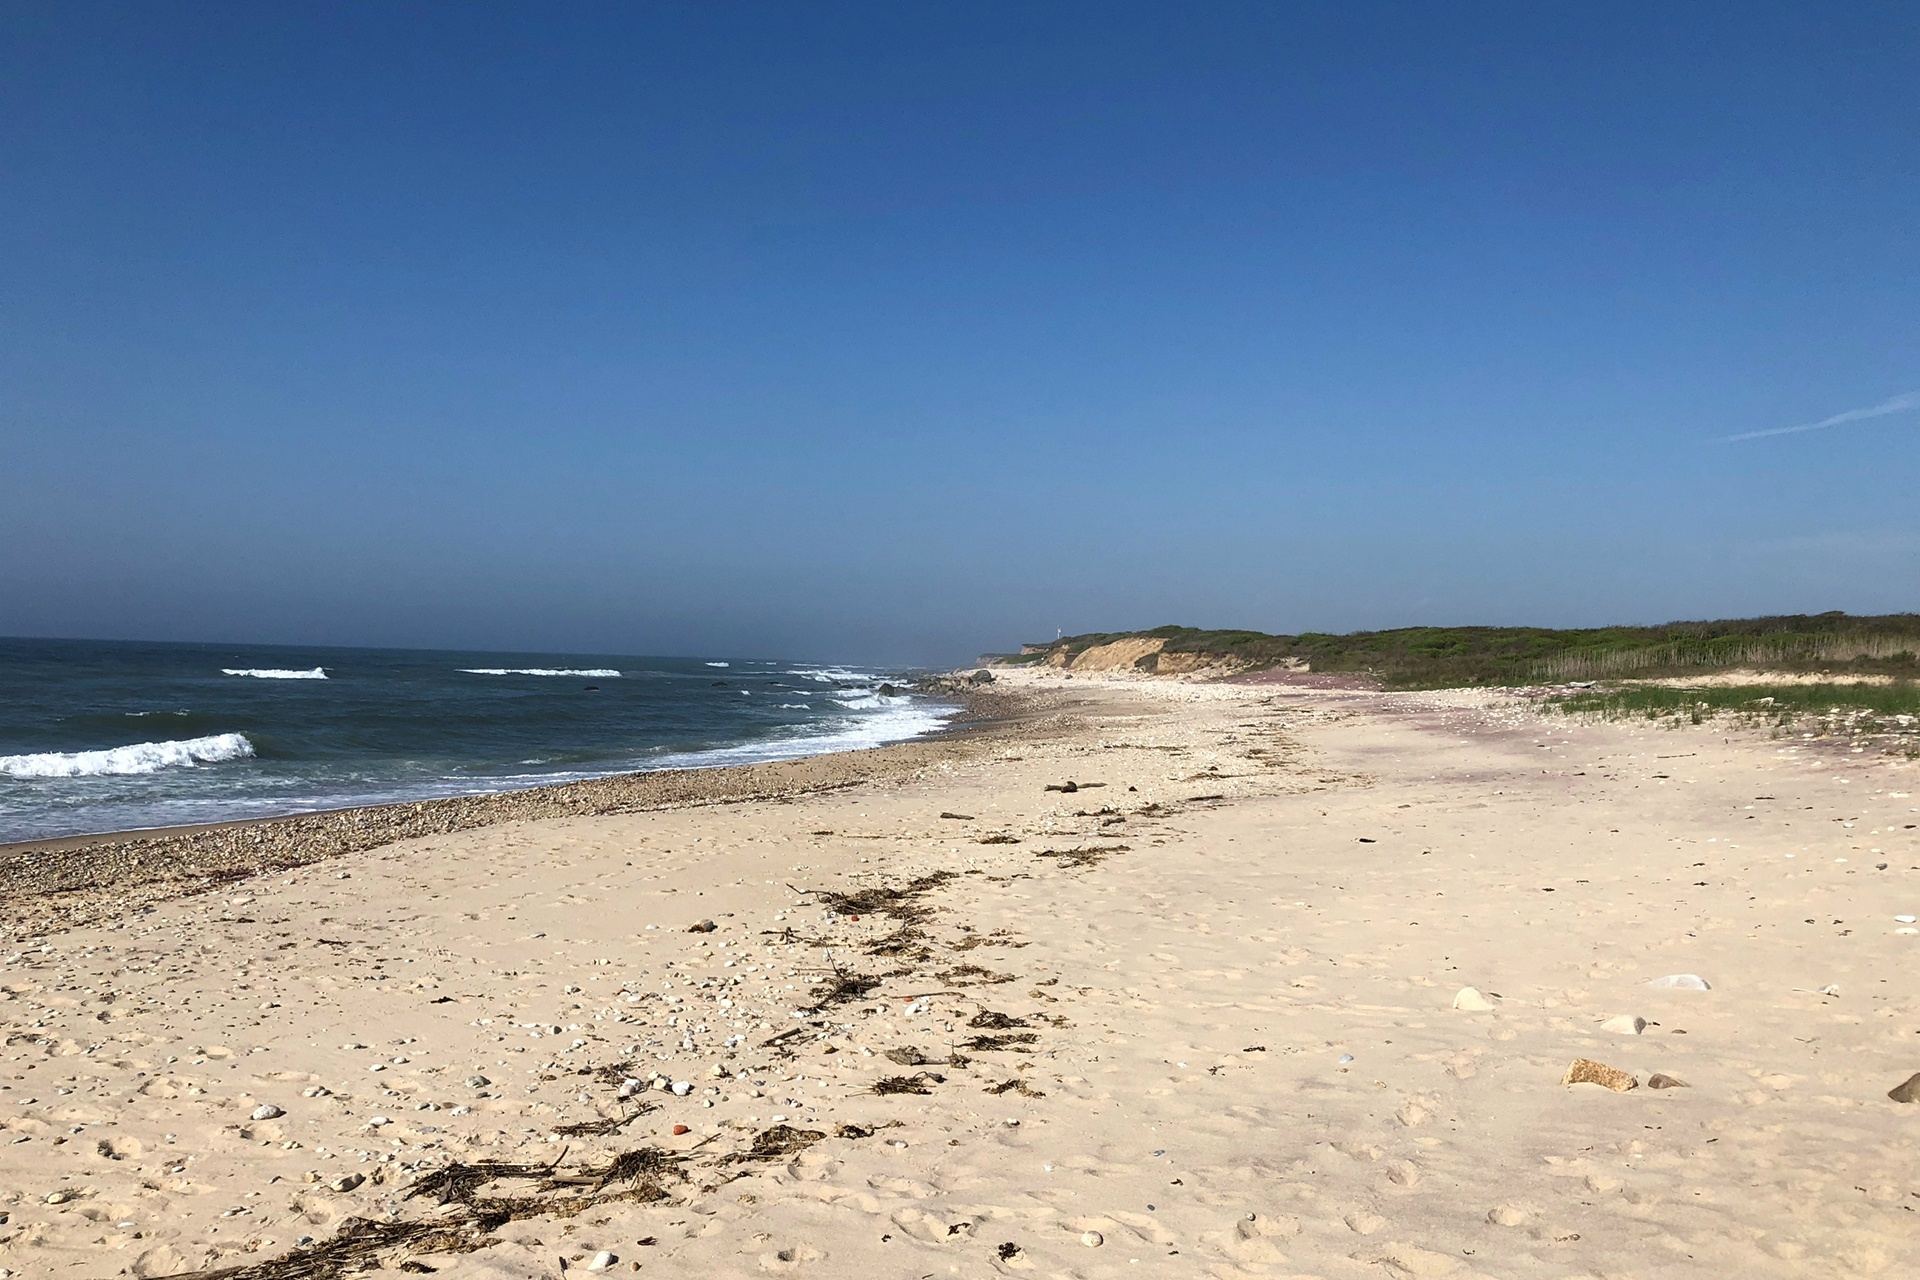 The property has a wide, sandy beach which offers the best surf casting and, with little public access for miles, offers tranquility and privacy. Montauk is home to many celebrities and famous residents, including avid surfer, American singer-songwriter Jimmy Buffett.